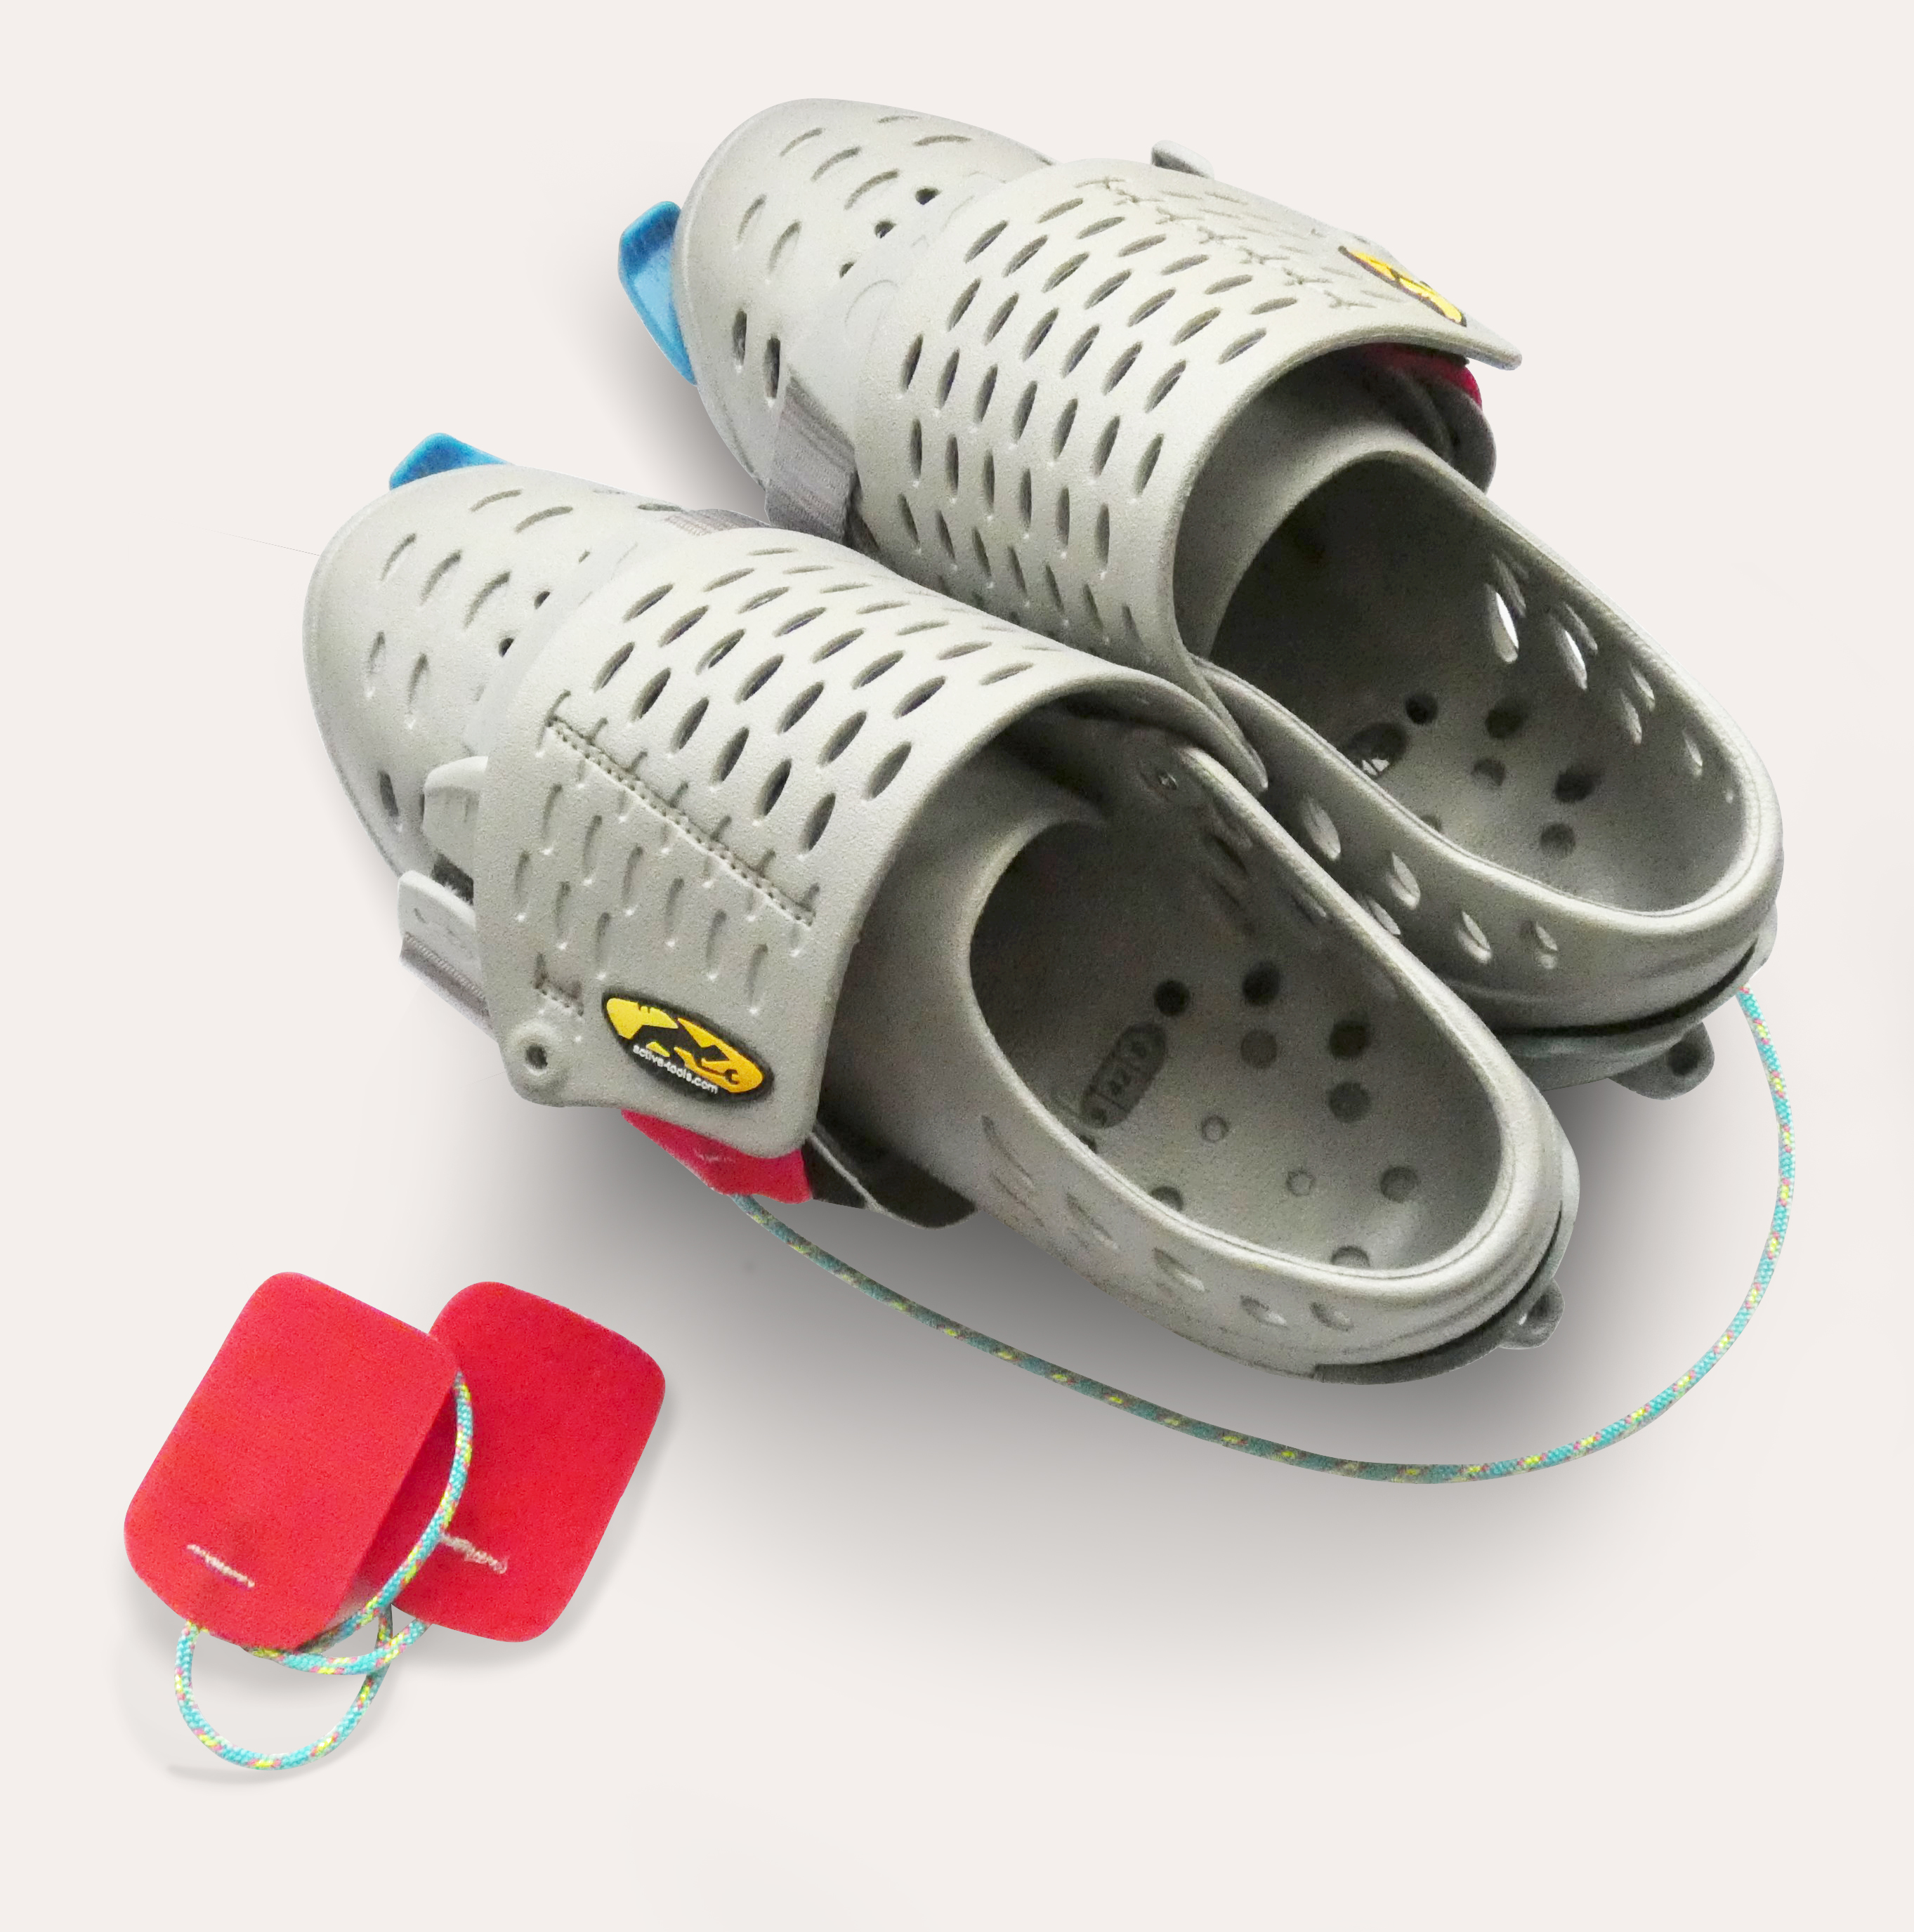 SPT-05 SHOES WITH VELCRO STRAP.jpg